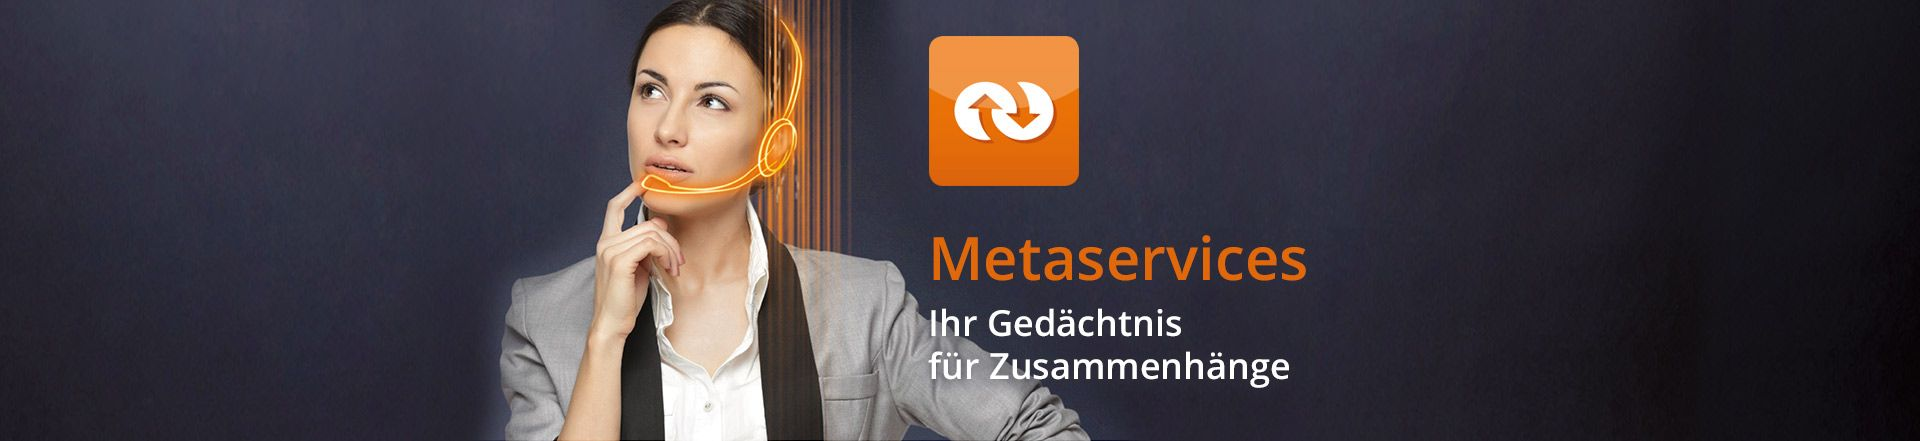 3iMedia GmbH - MetaServices